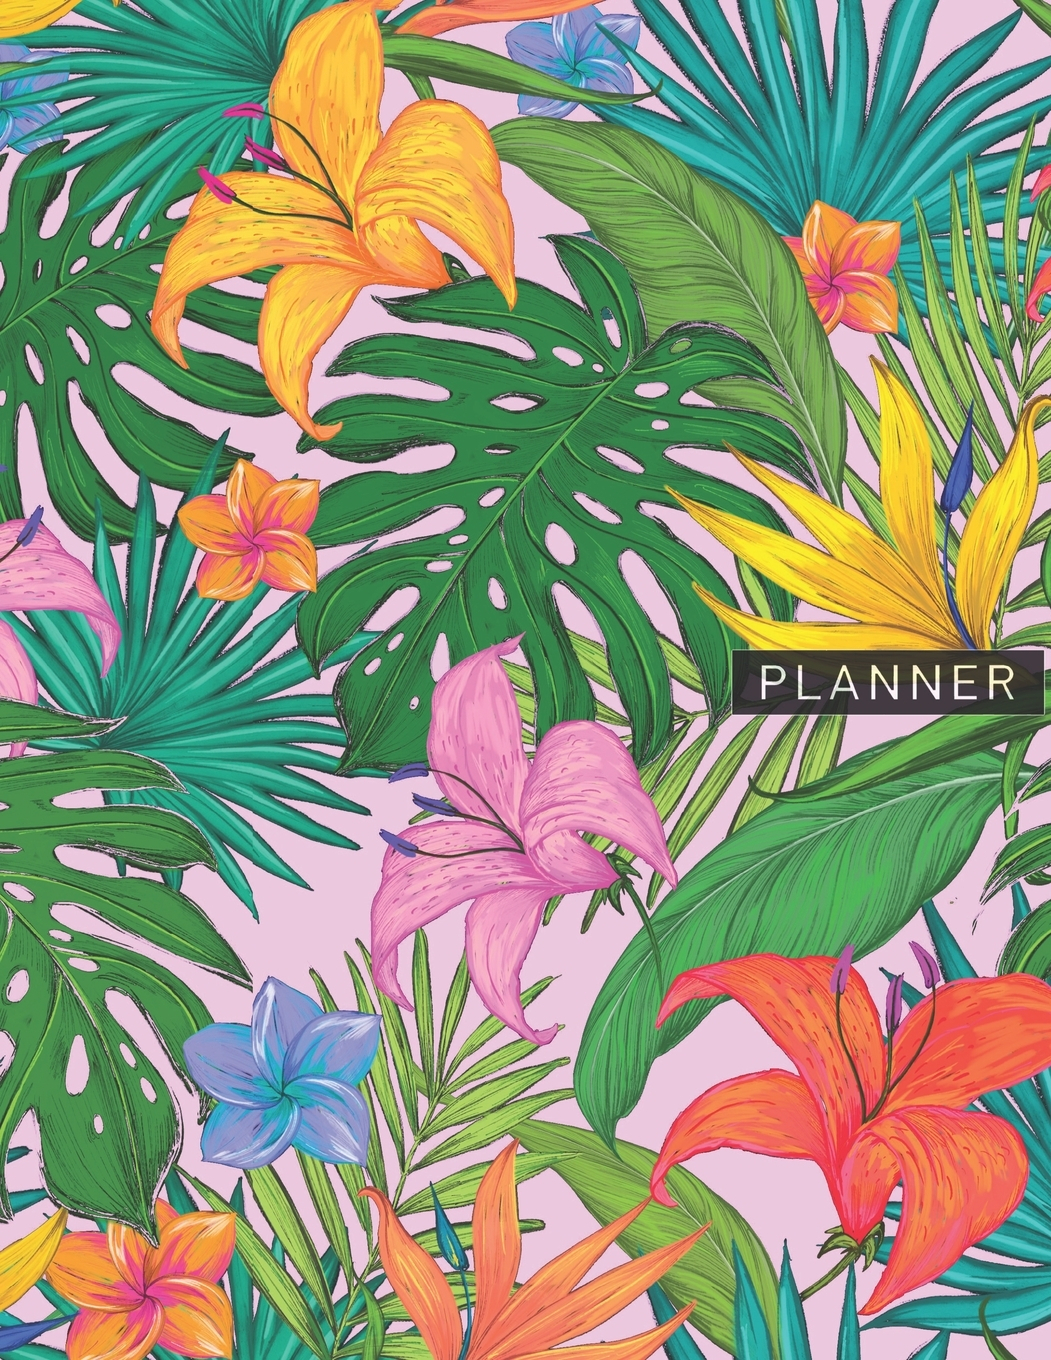 Planner : Tropical Green Leaves & Flowers 2 Year Monthly Planner With Note  Pages (24 Months) - Jan 2020 - Dec 2021 - Month Planning - Appointment within Tropical Floral: Calendar 2021 Monthly